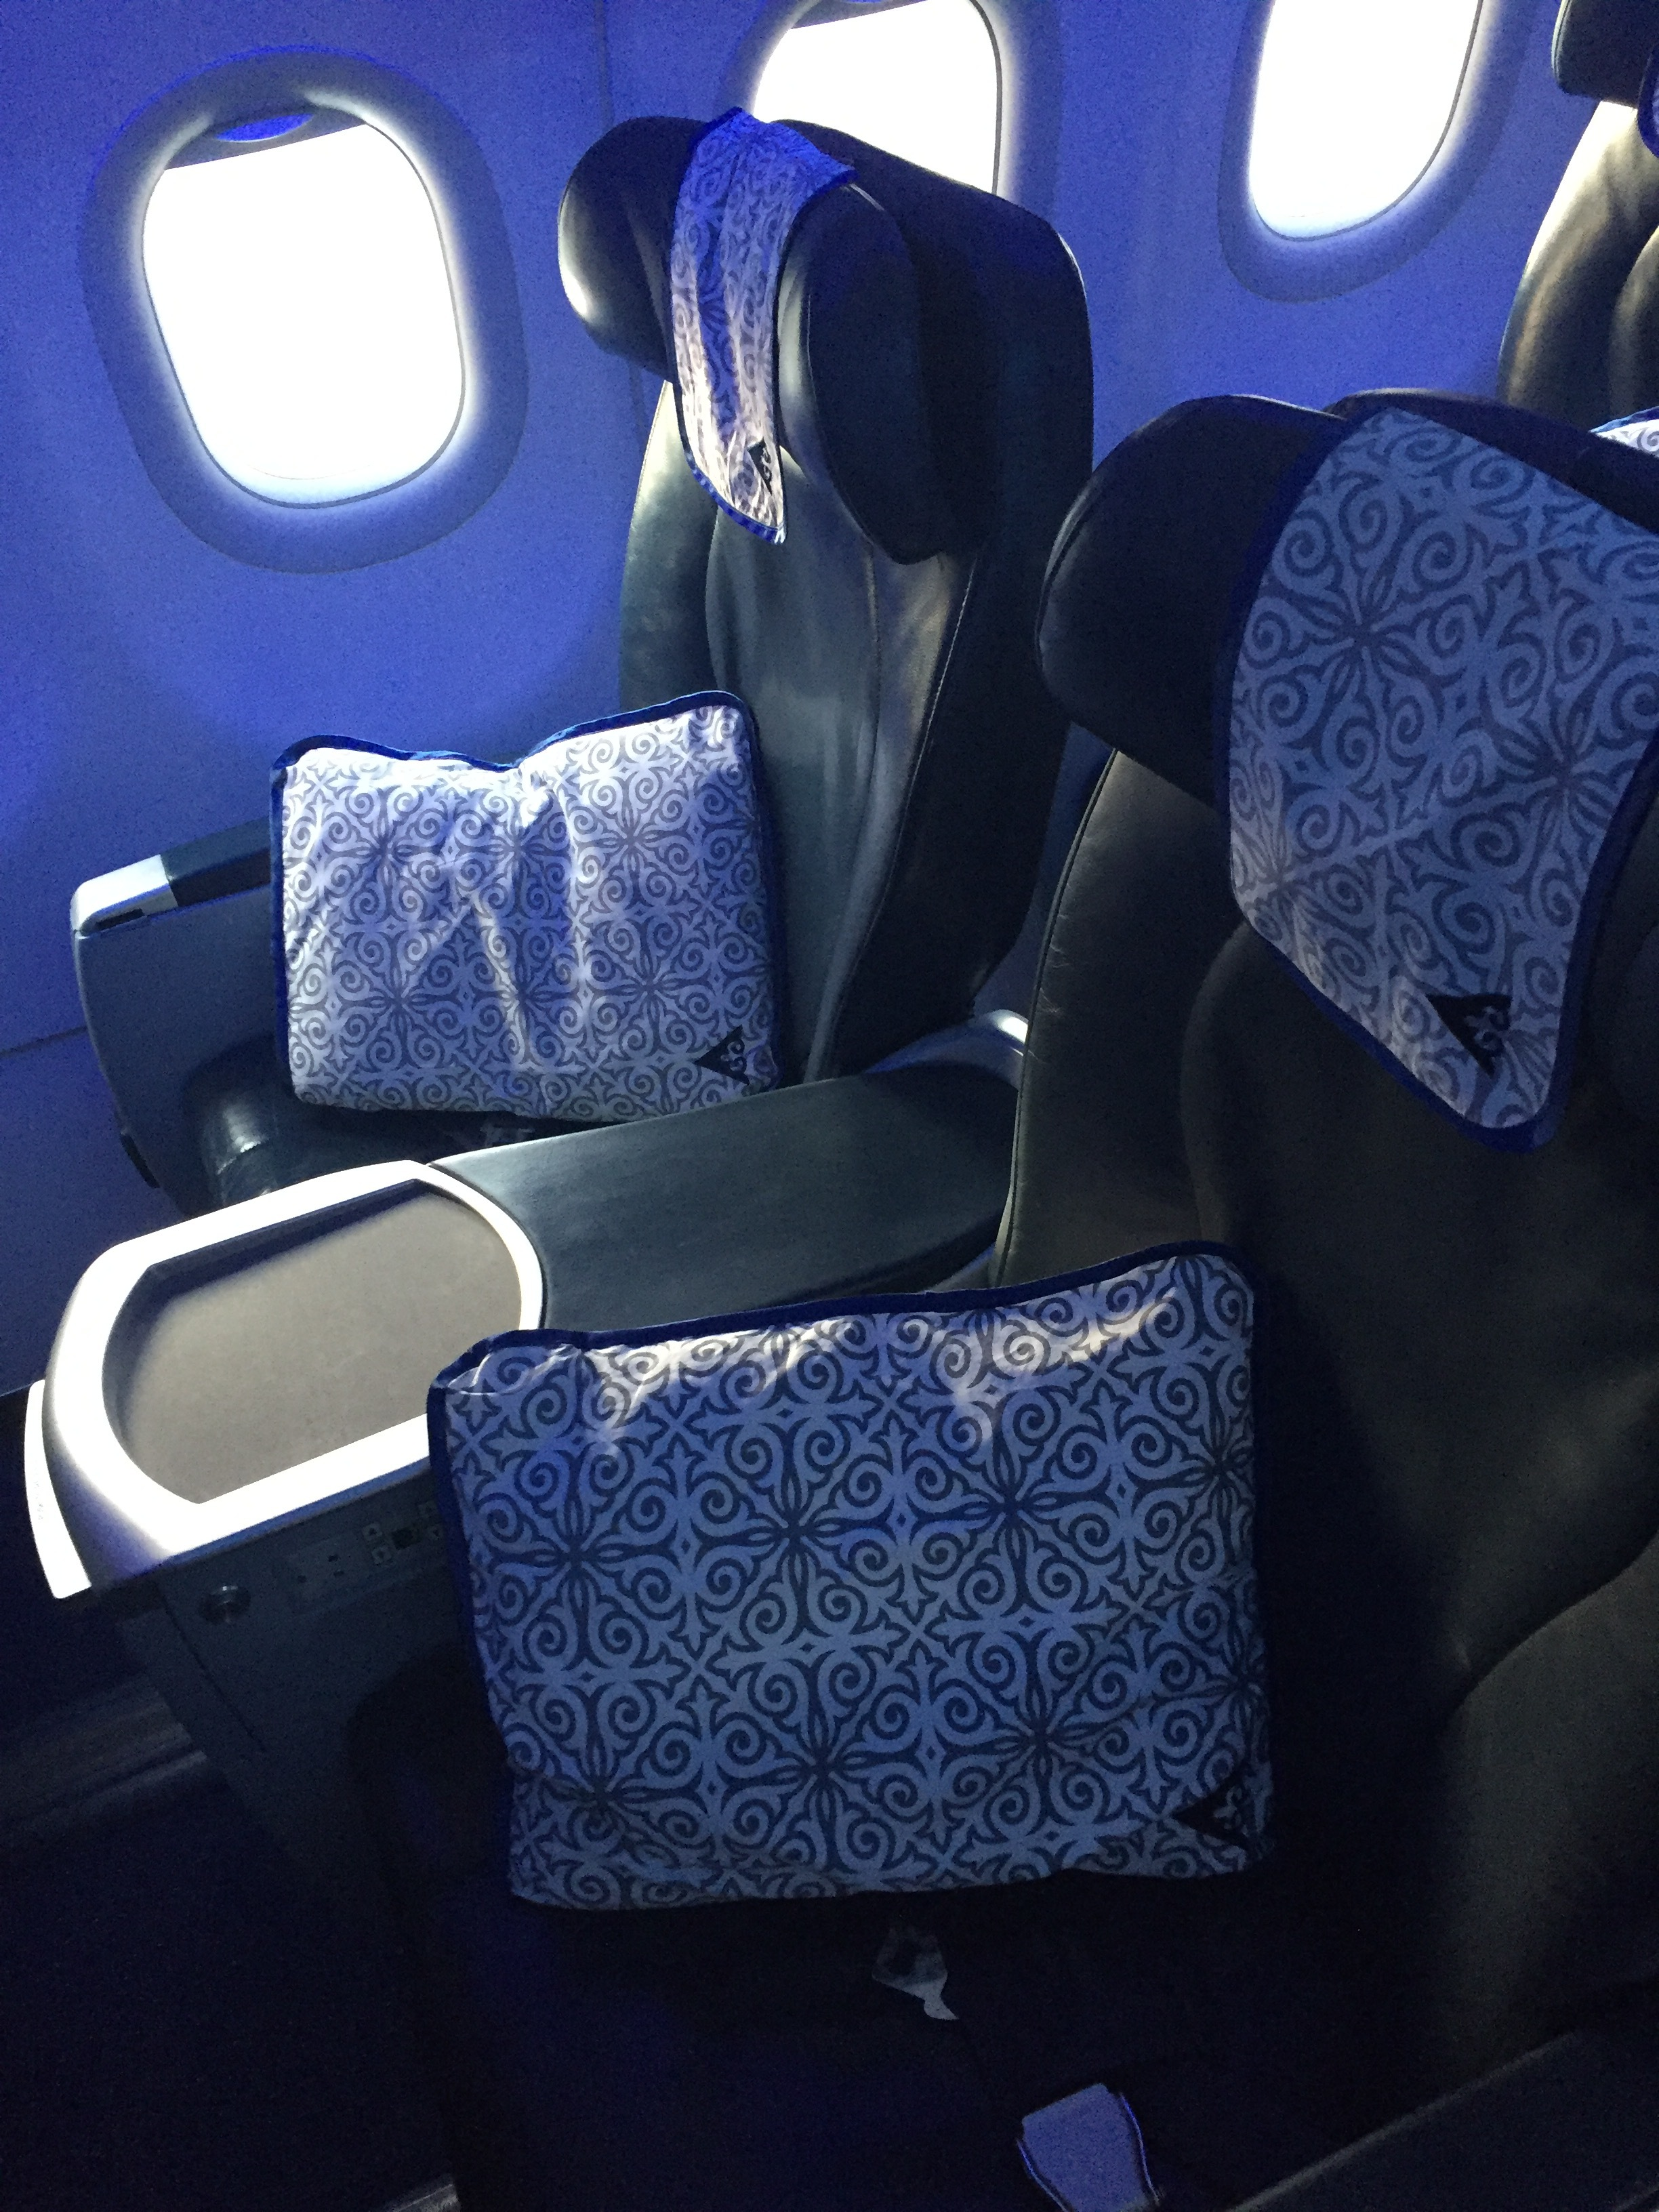 air astana business class seats.JPG